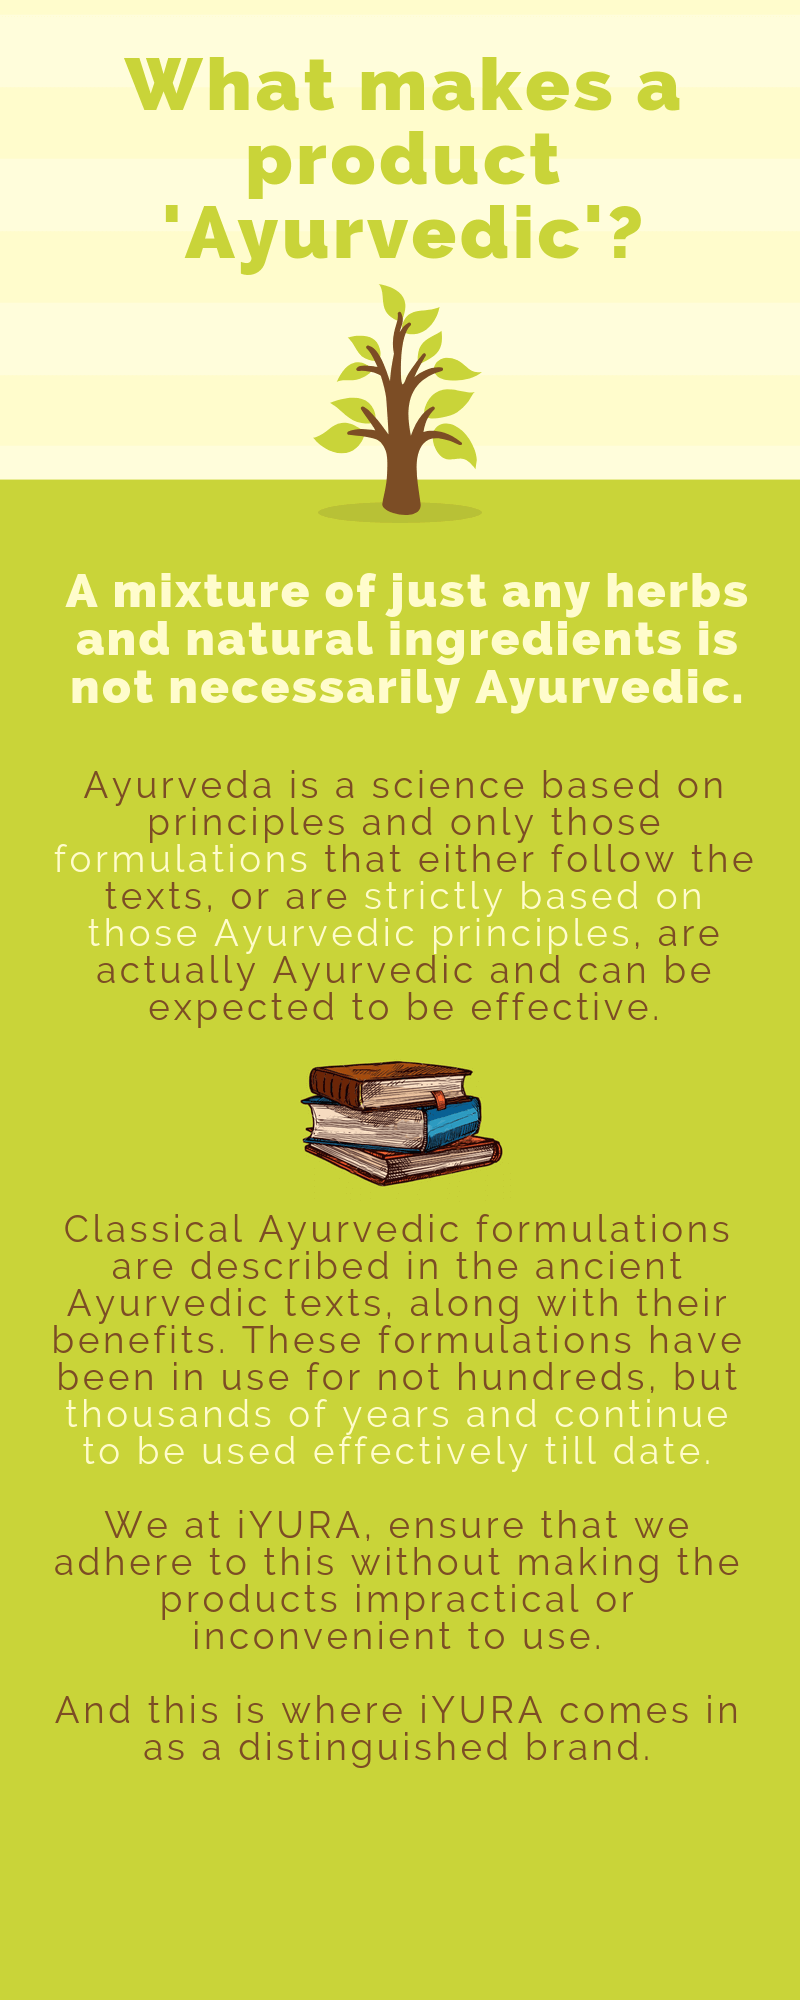 iYURA's ayurvedic and botanical research is the basis of all their actions. No cursory heresy, only time-tested formulations brought to life pragmatically.